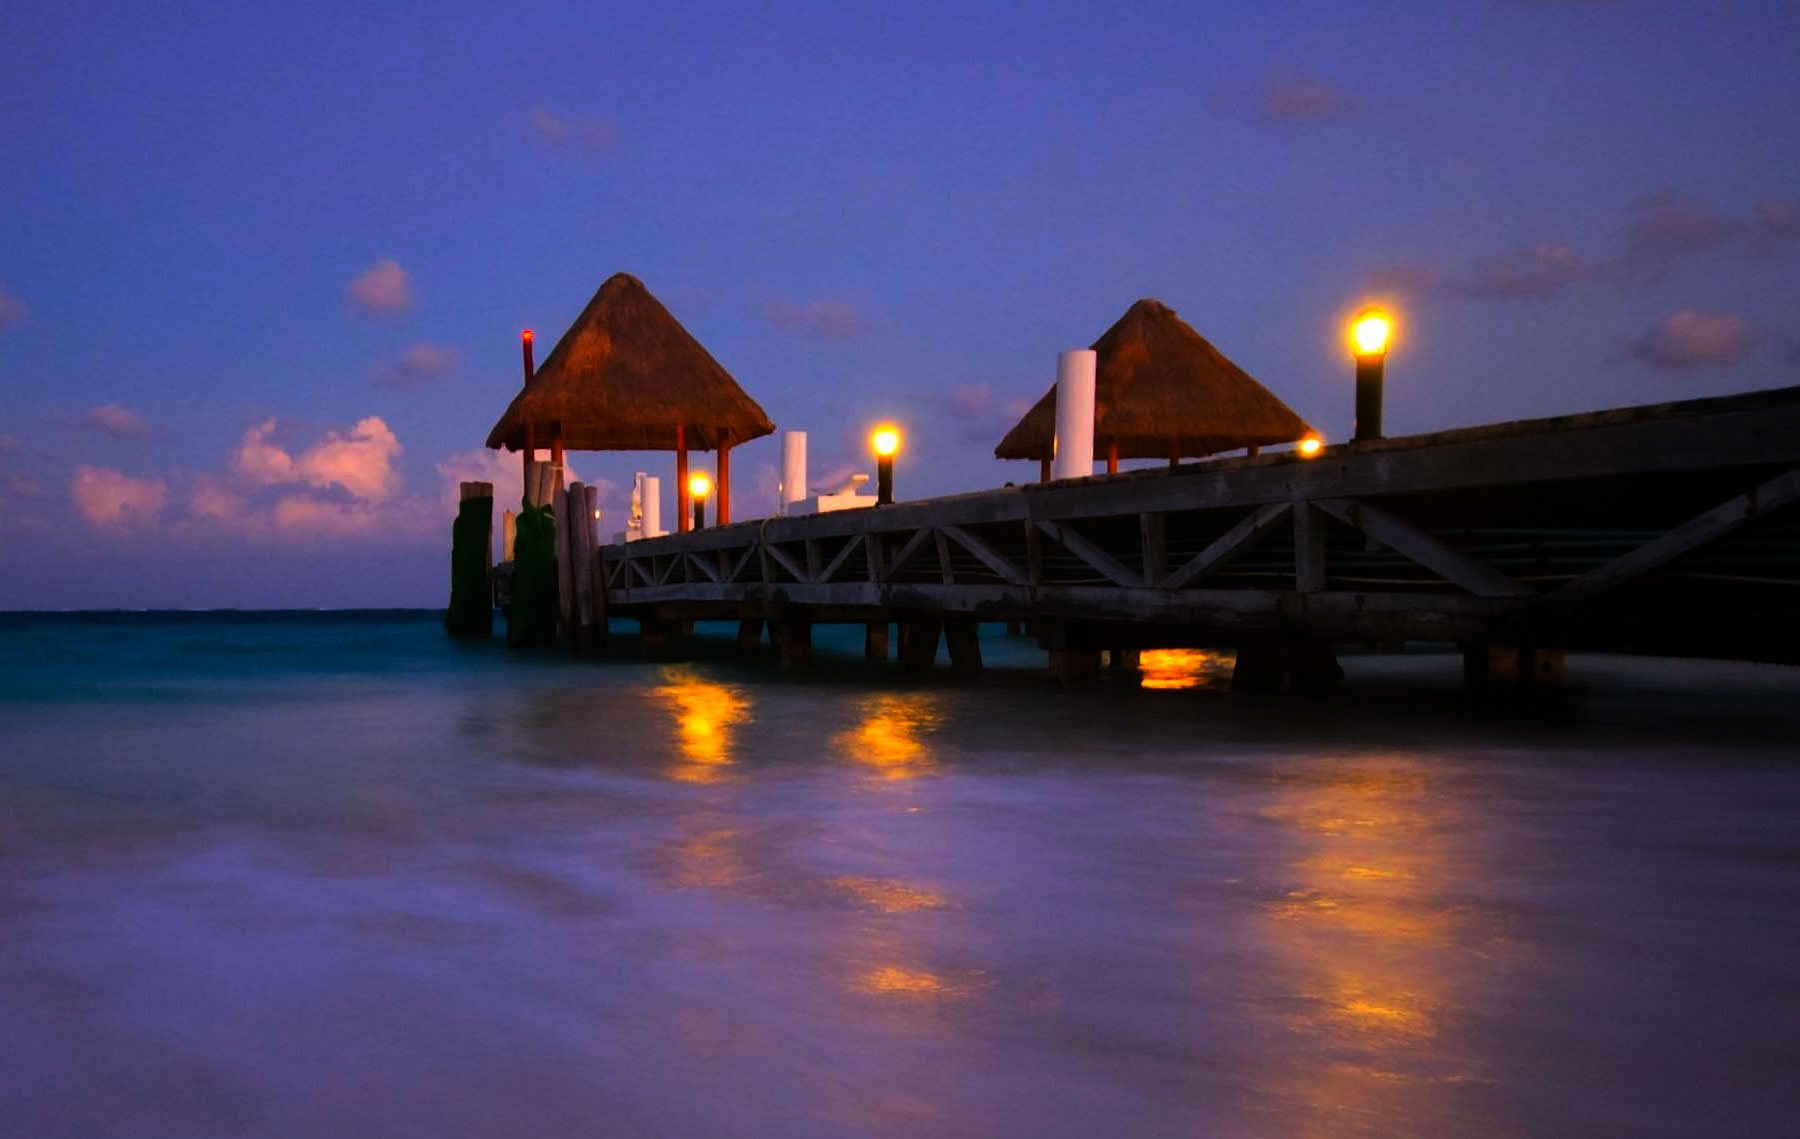 Best Romantic Places to See in Cancun on Your Honeymoon Holidays